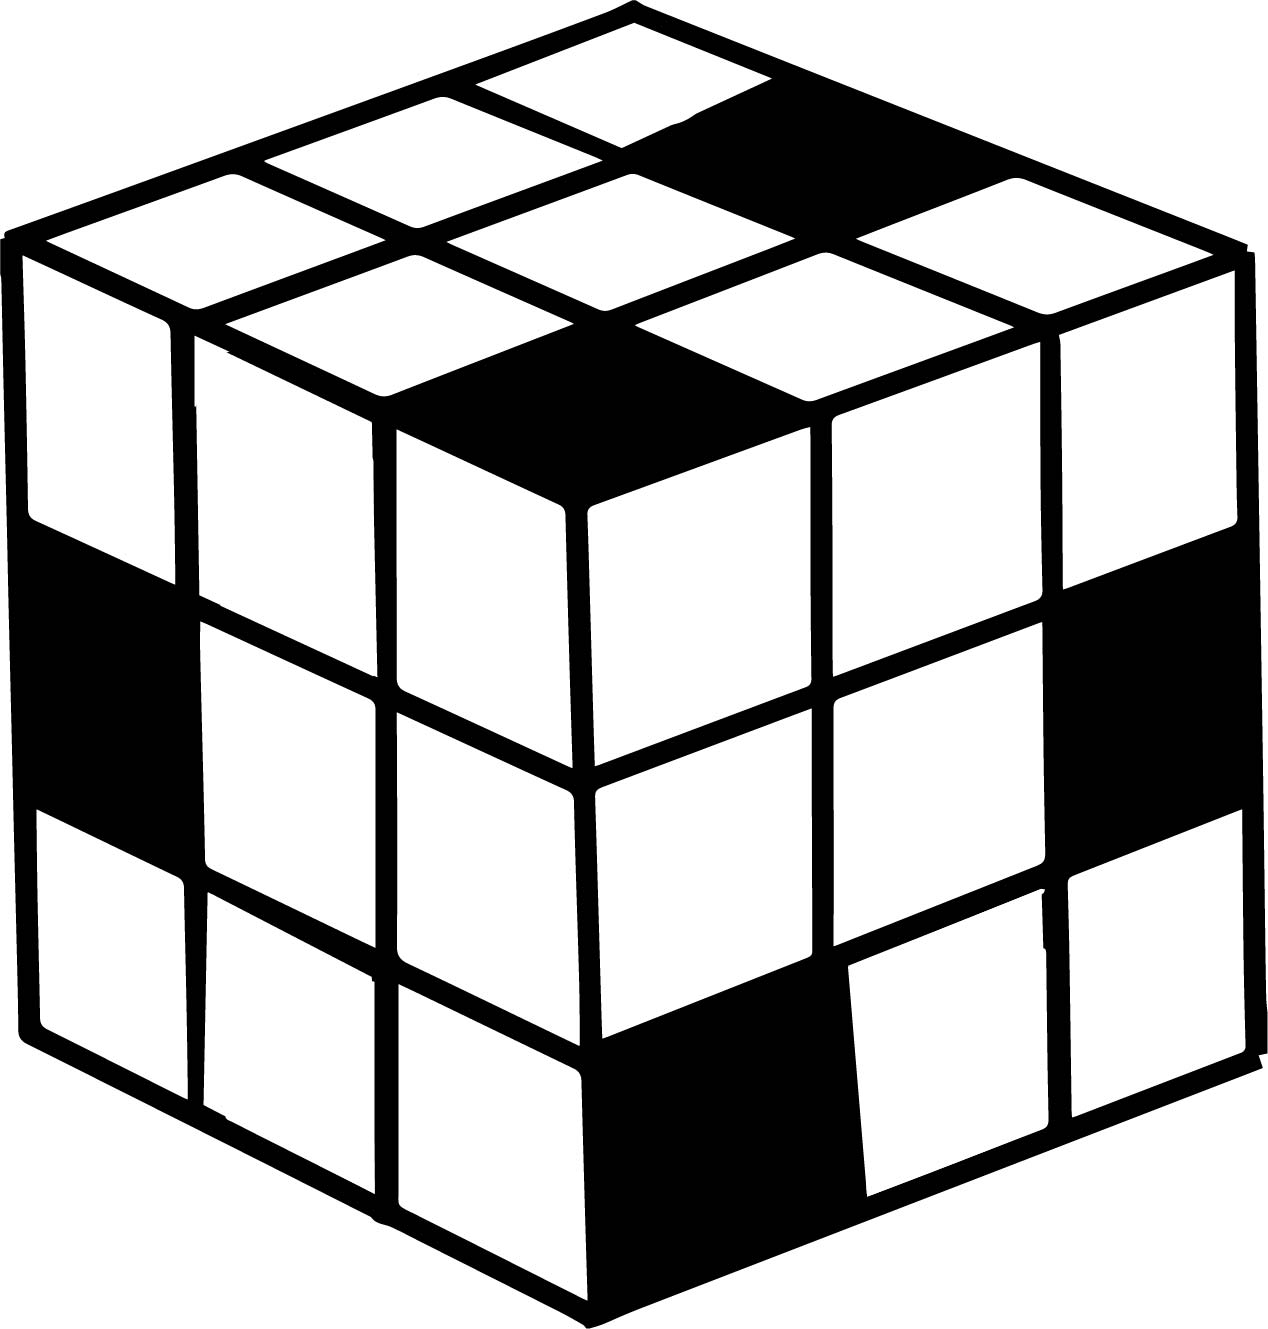 1268x1329 80s Puzzle Box Coloring Pages Wecoloringpage